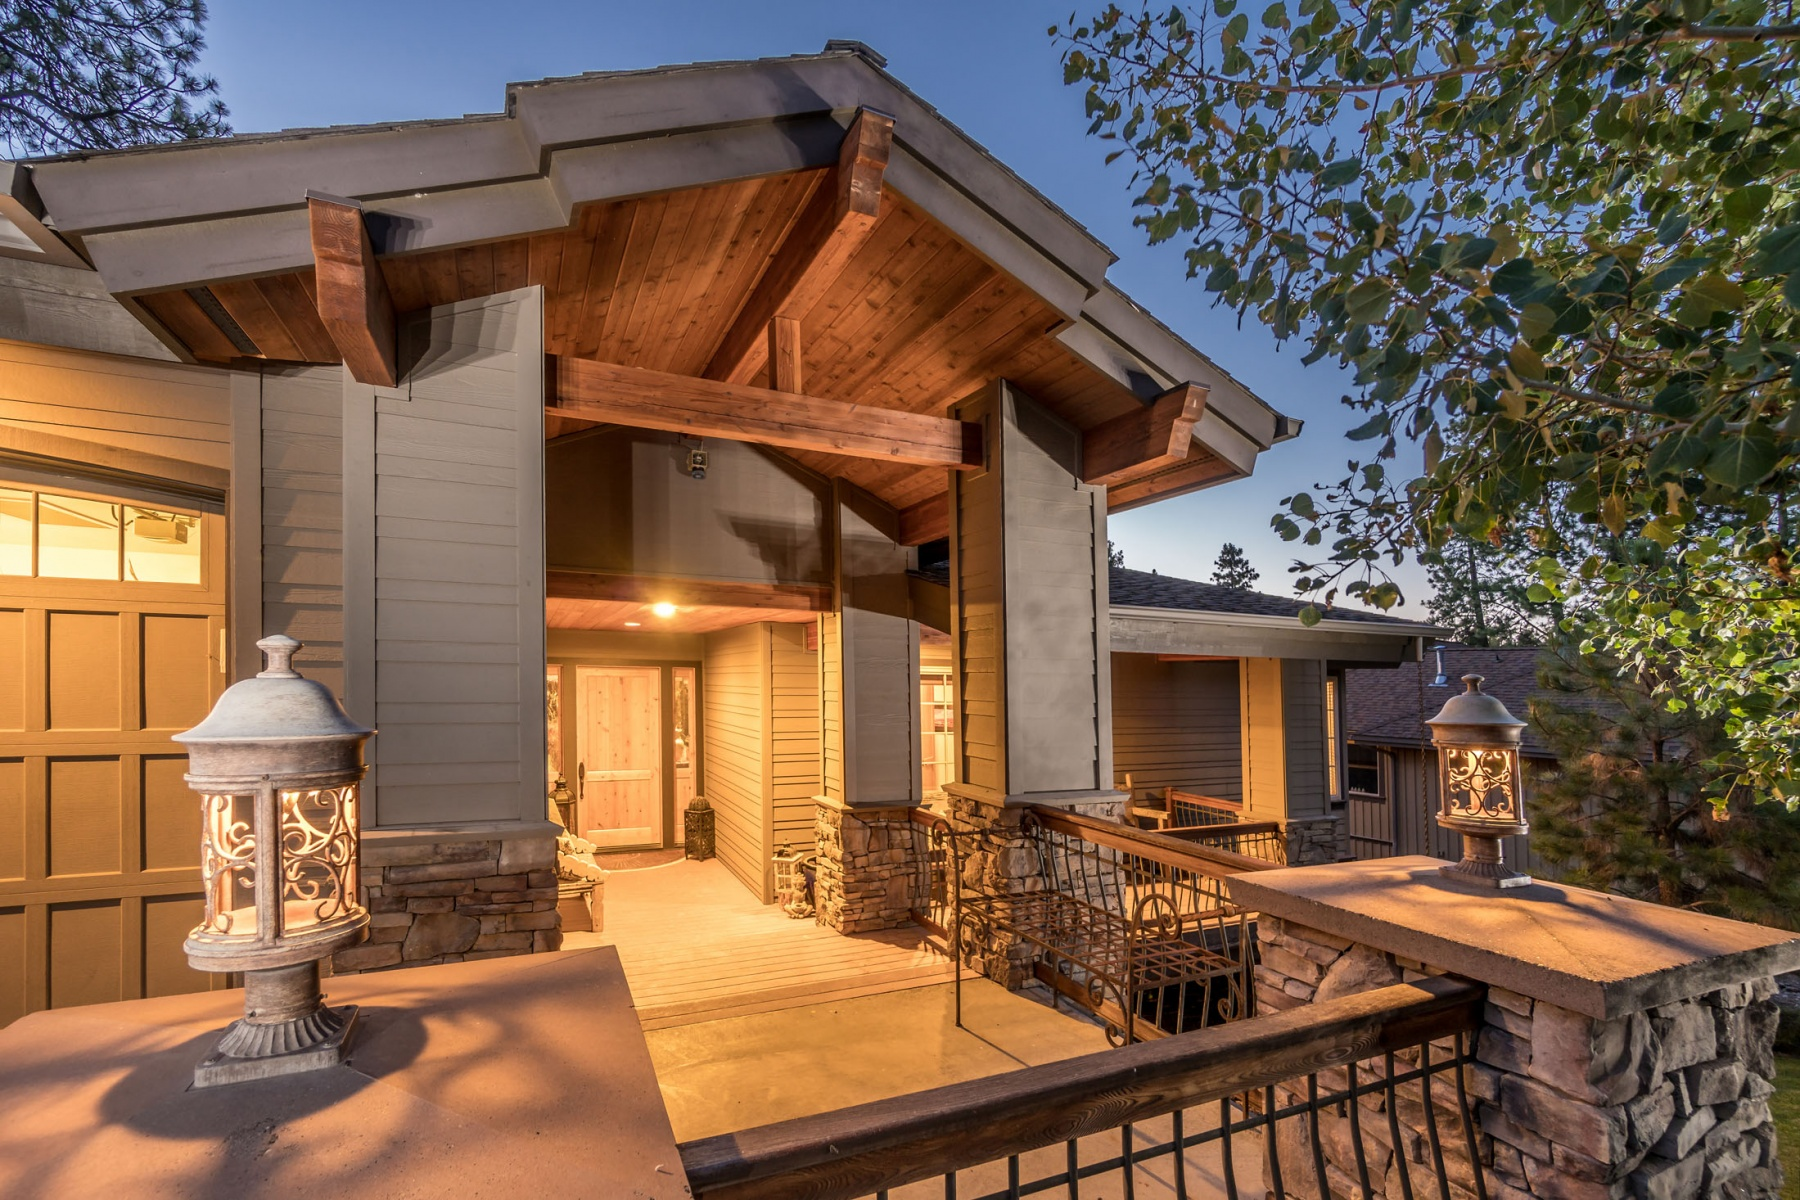 Single Family Home for Sale at Reserve at Broken Top 2828 NW Lakemont Dr Bend, Oregon, 97703 United States